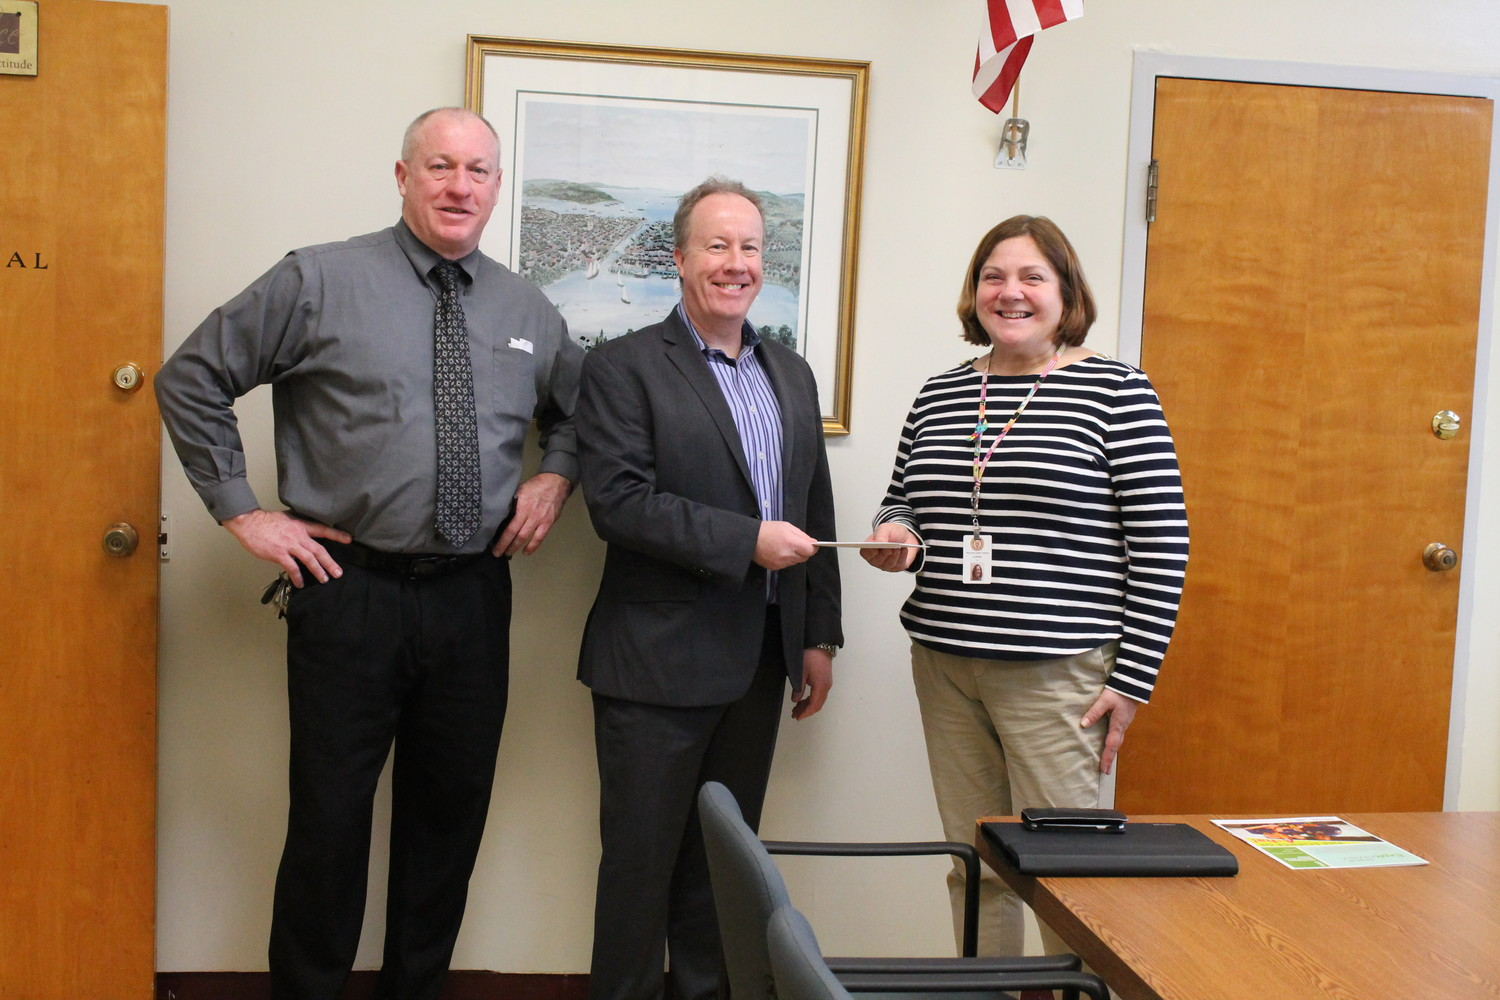 CHECK RECEIVED: Gerry Habershaw, principal of Pilgrim High School, along with Dori Labella, head of the science department, receiving the grant money from Paul Hickey from Toshiba.